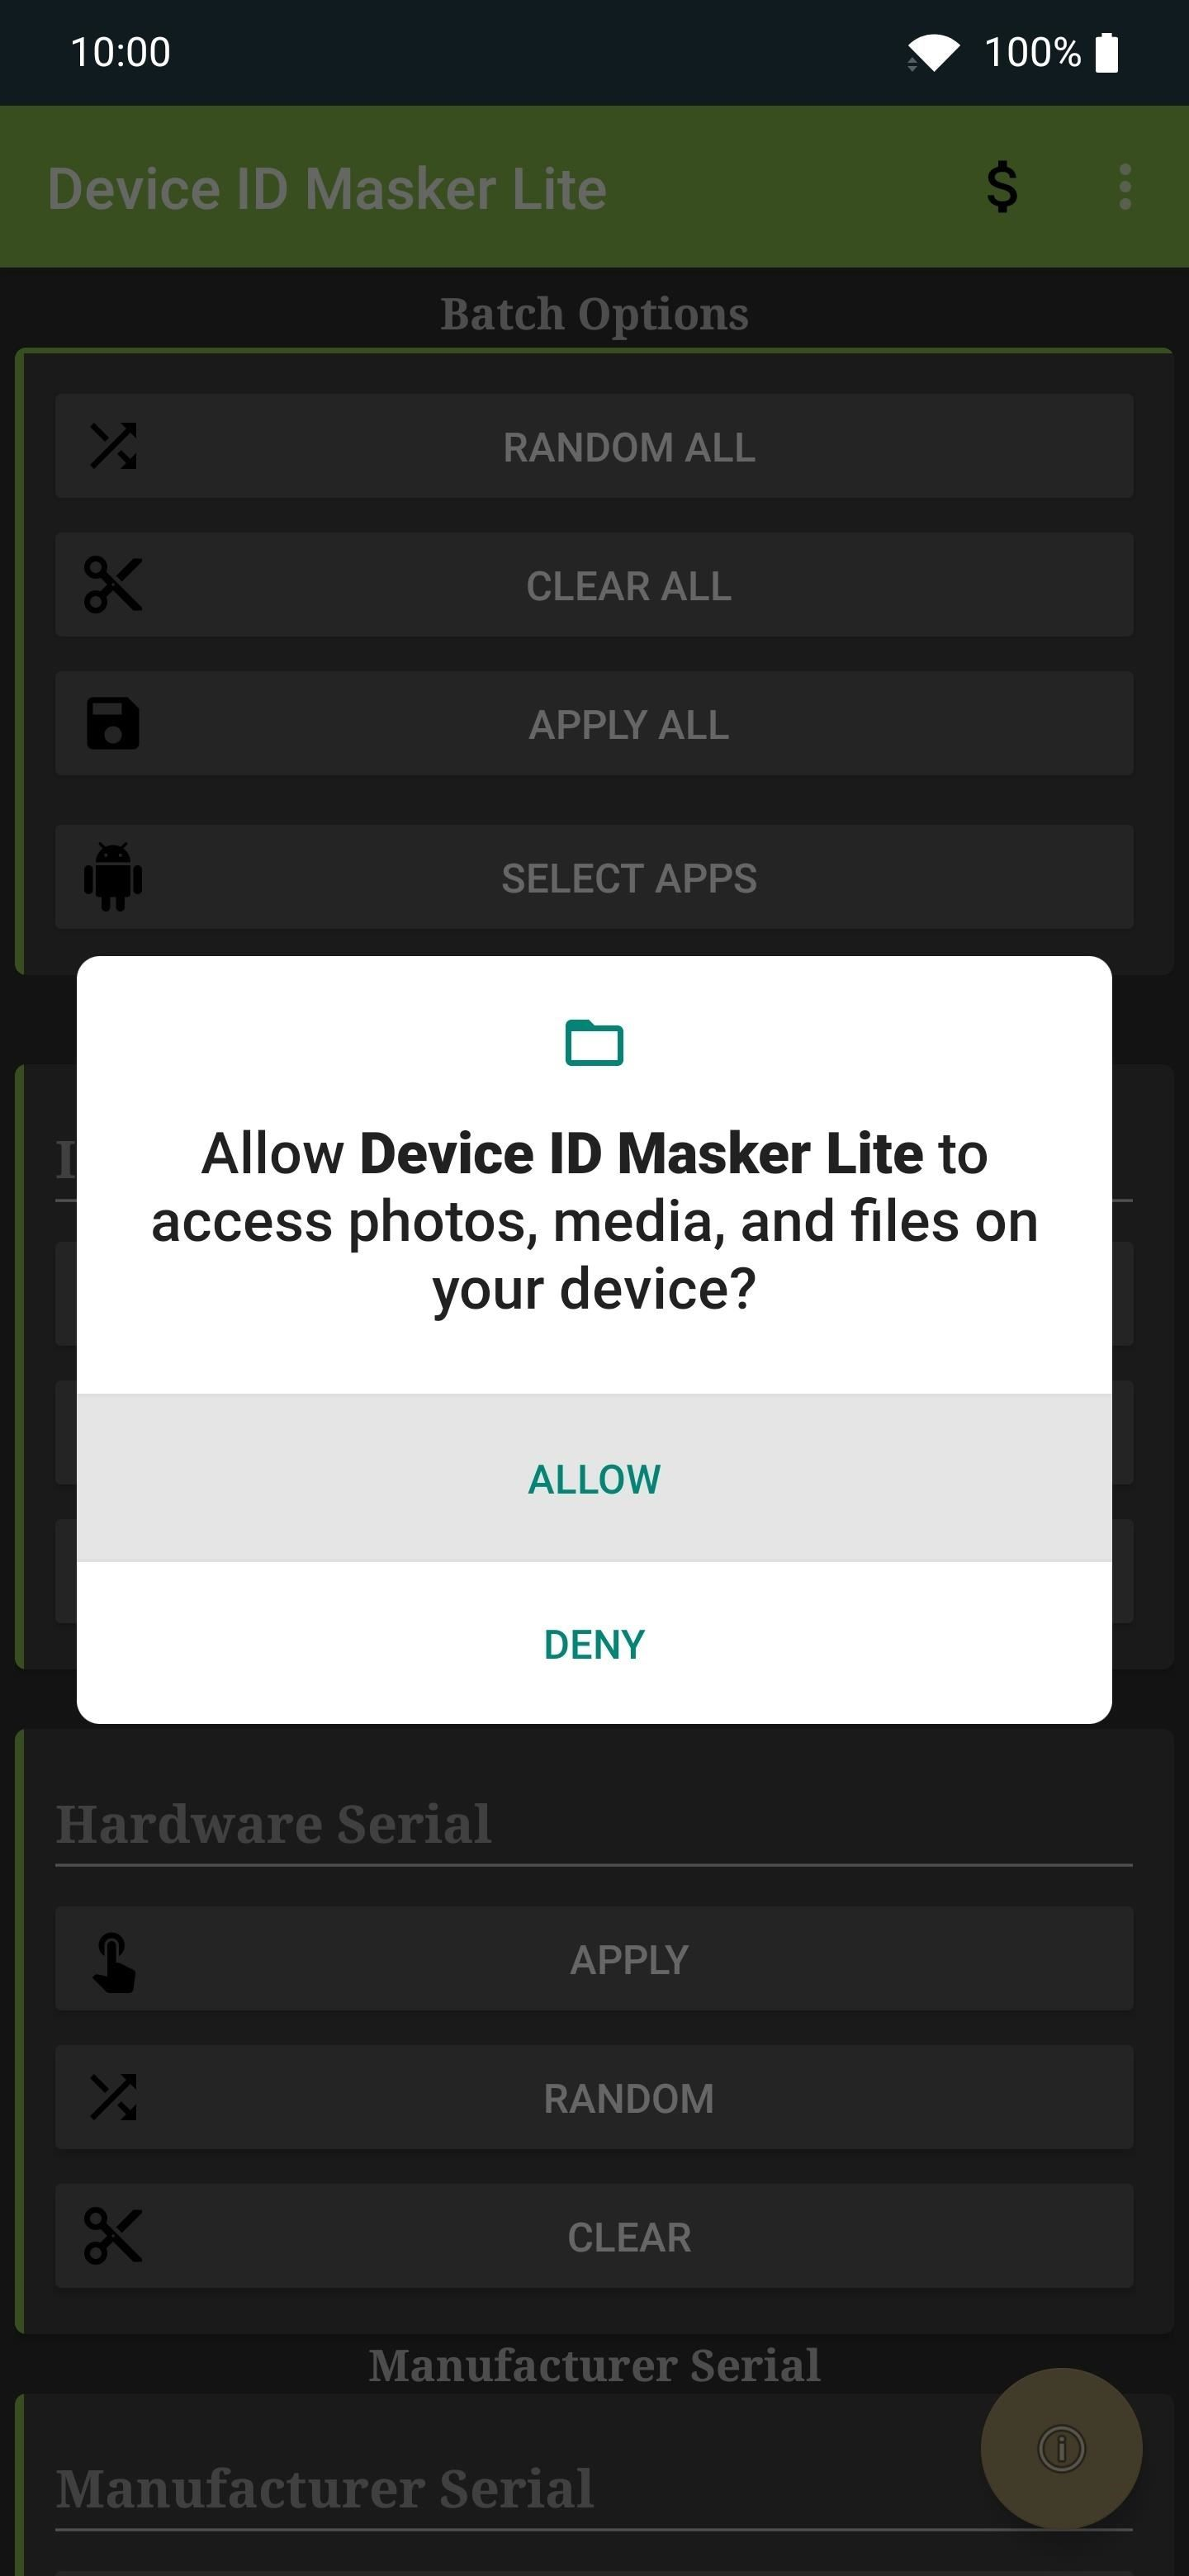 How to Keep Apps from Collecting Data About Your Phone by Spoofing Device ID Values